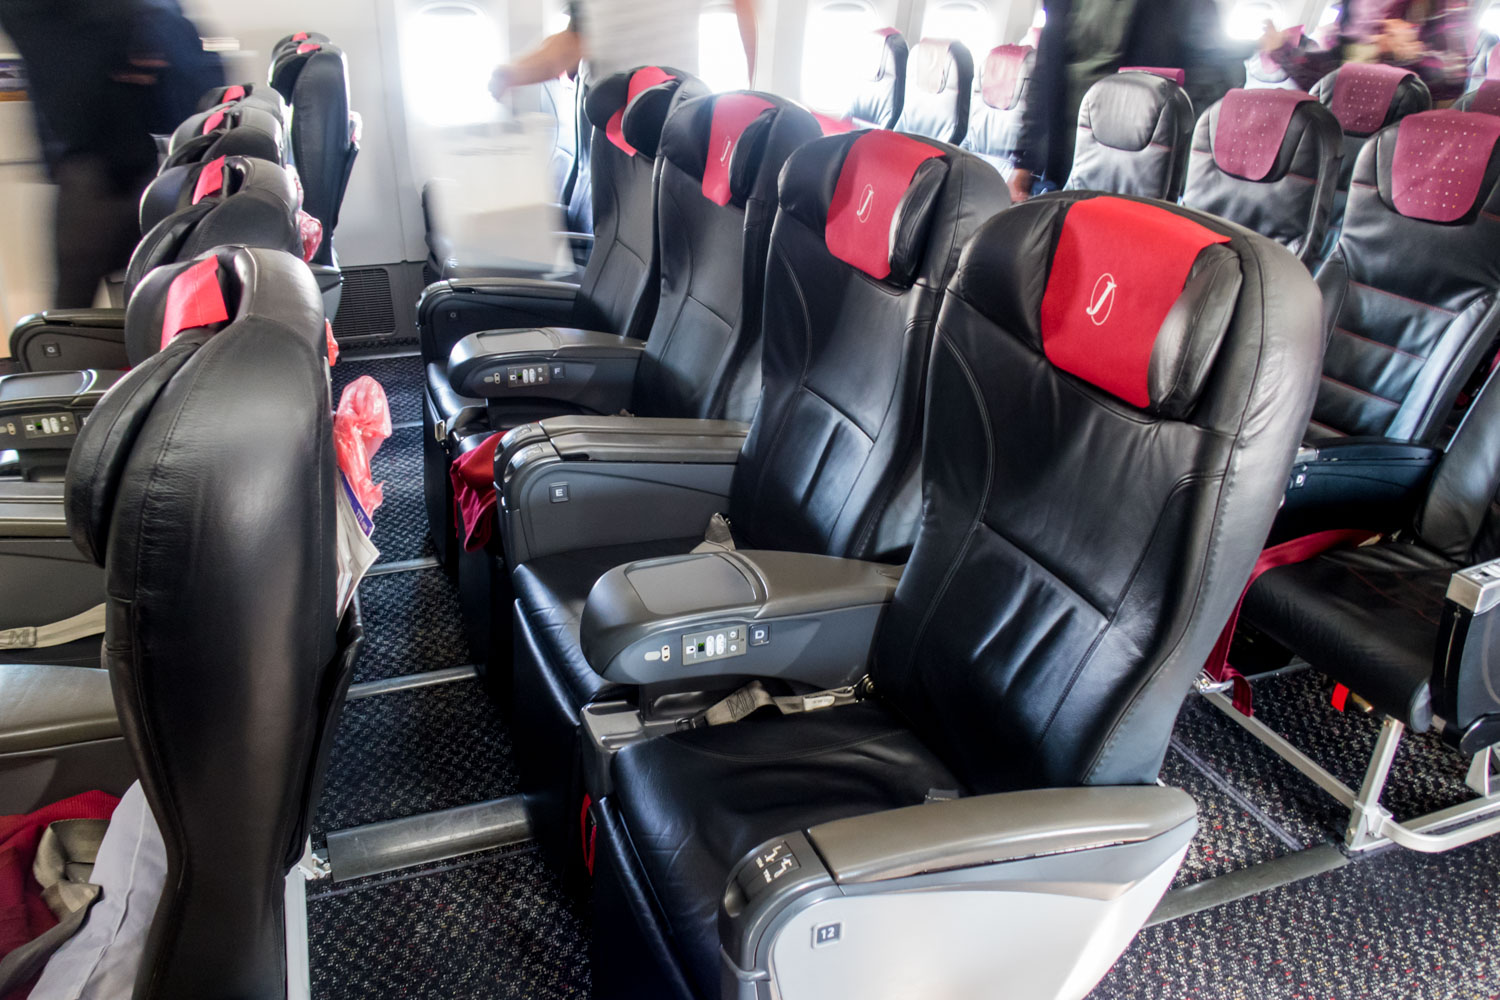 Class J Seats on JAL 777-300